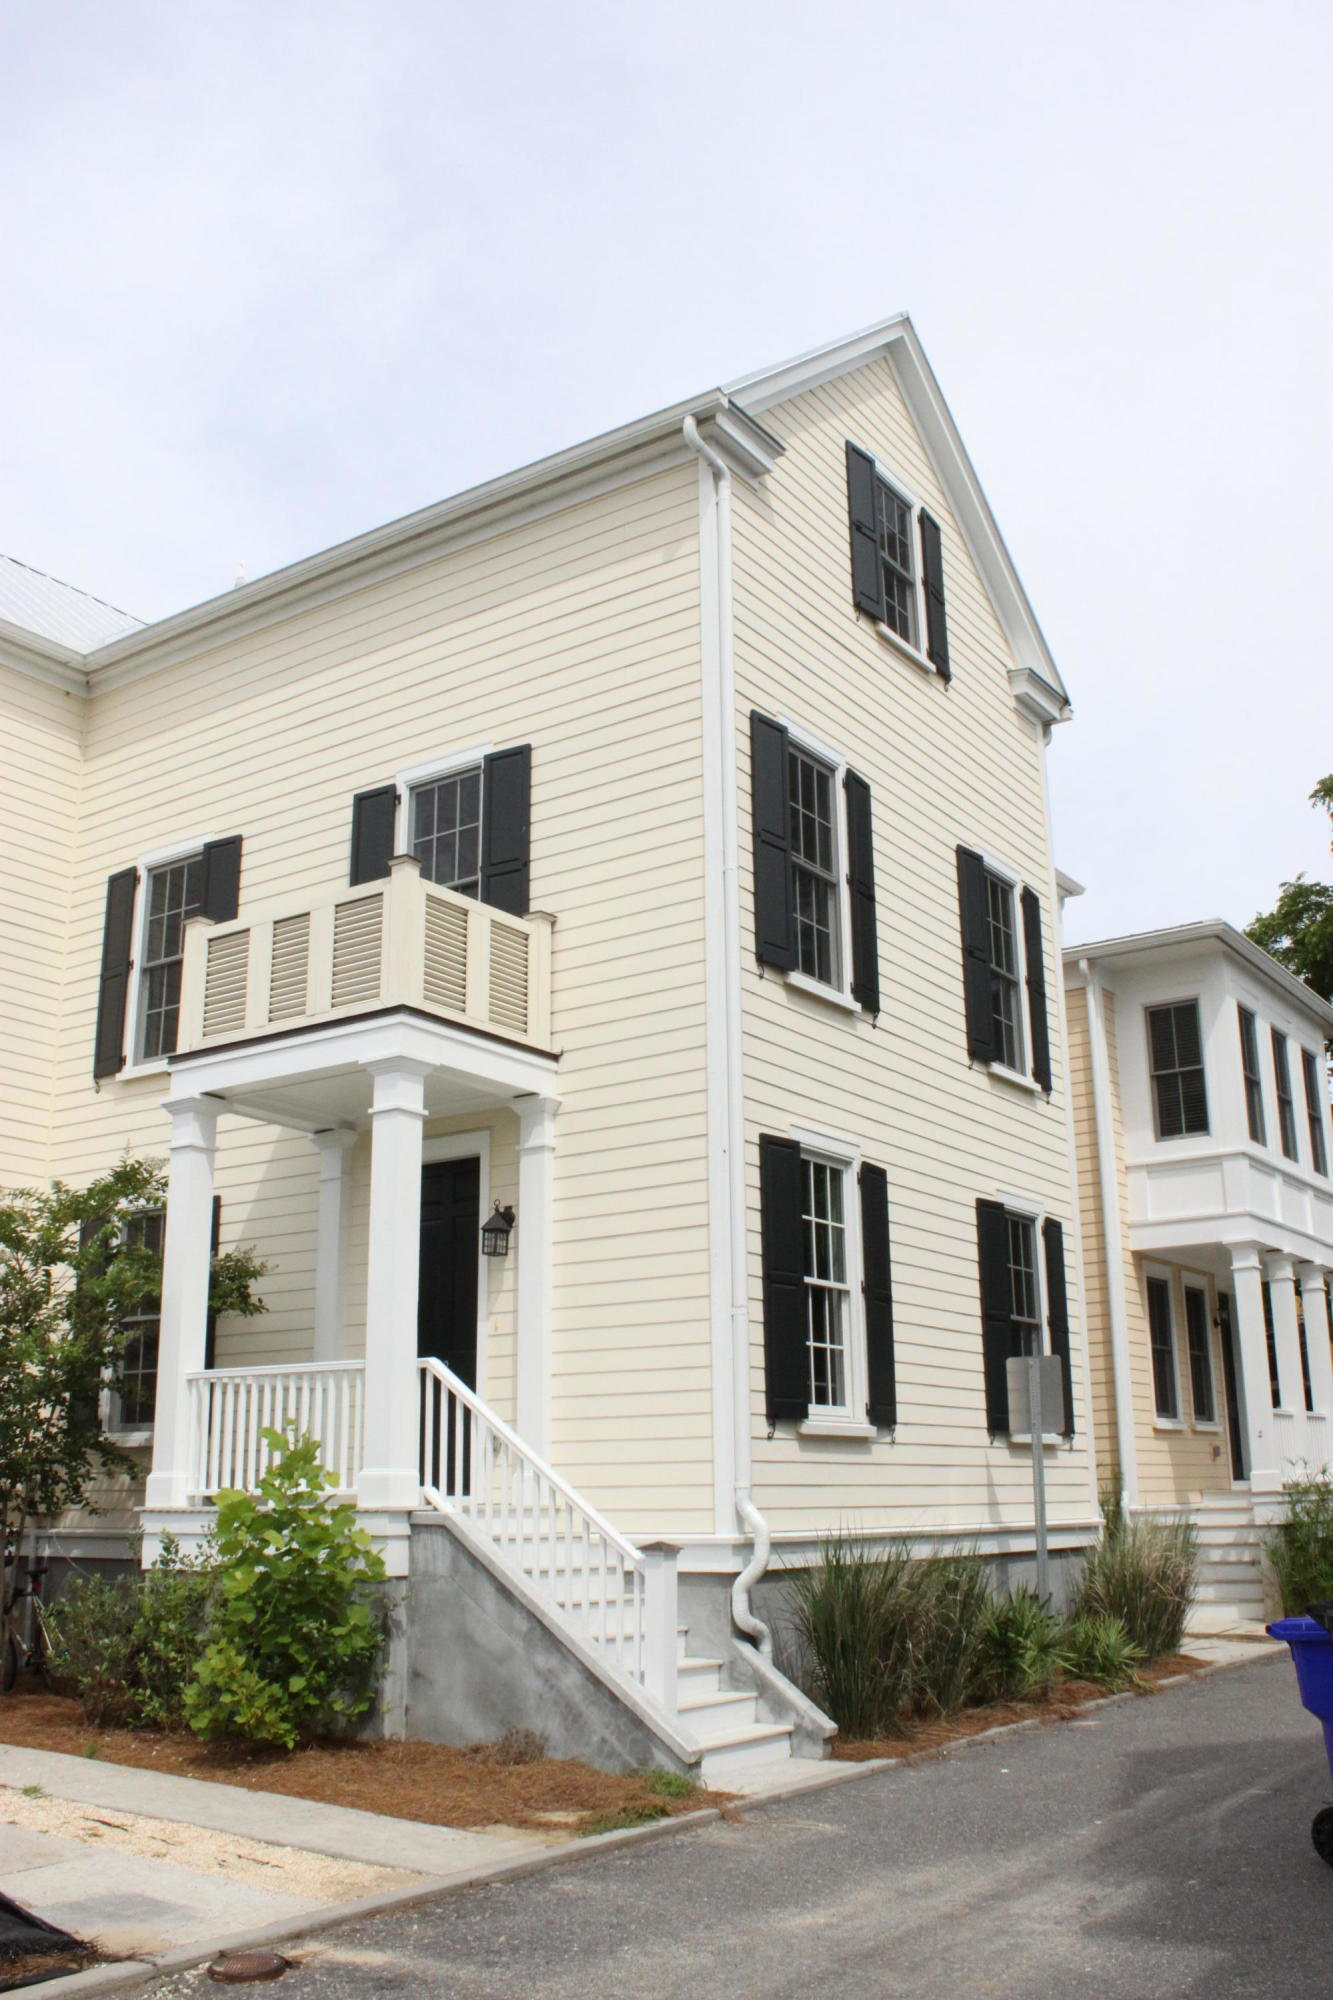 Home for sale 58 Dereef Court, Morris Square, Downtown Charleston, SC